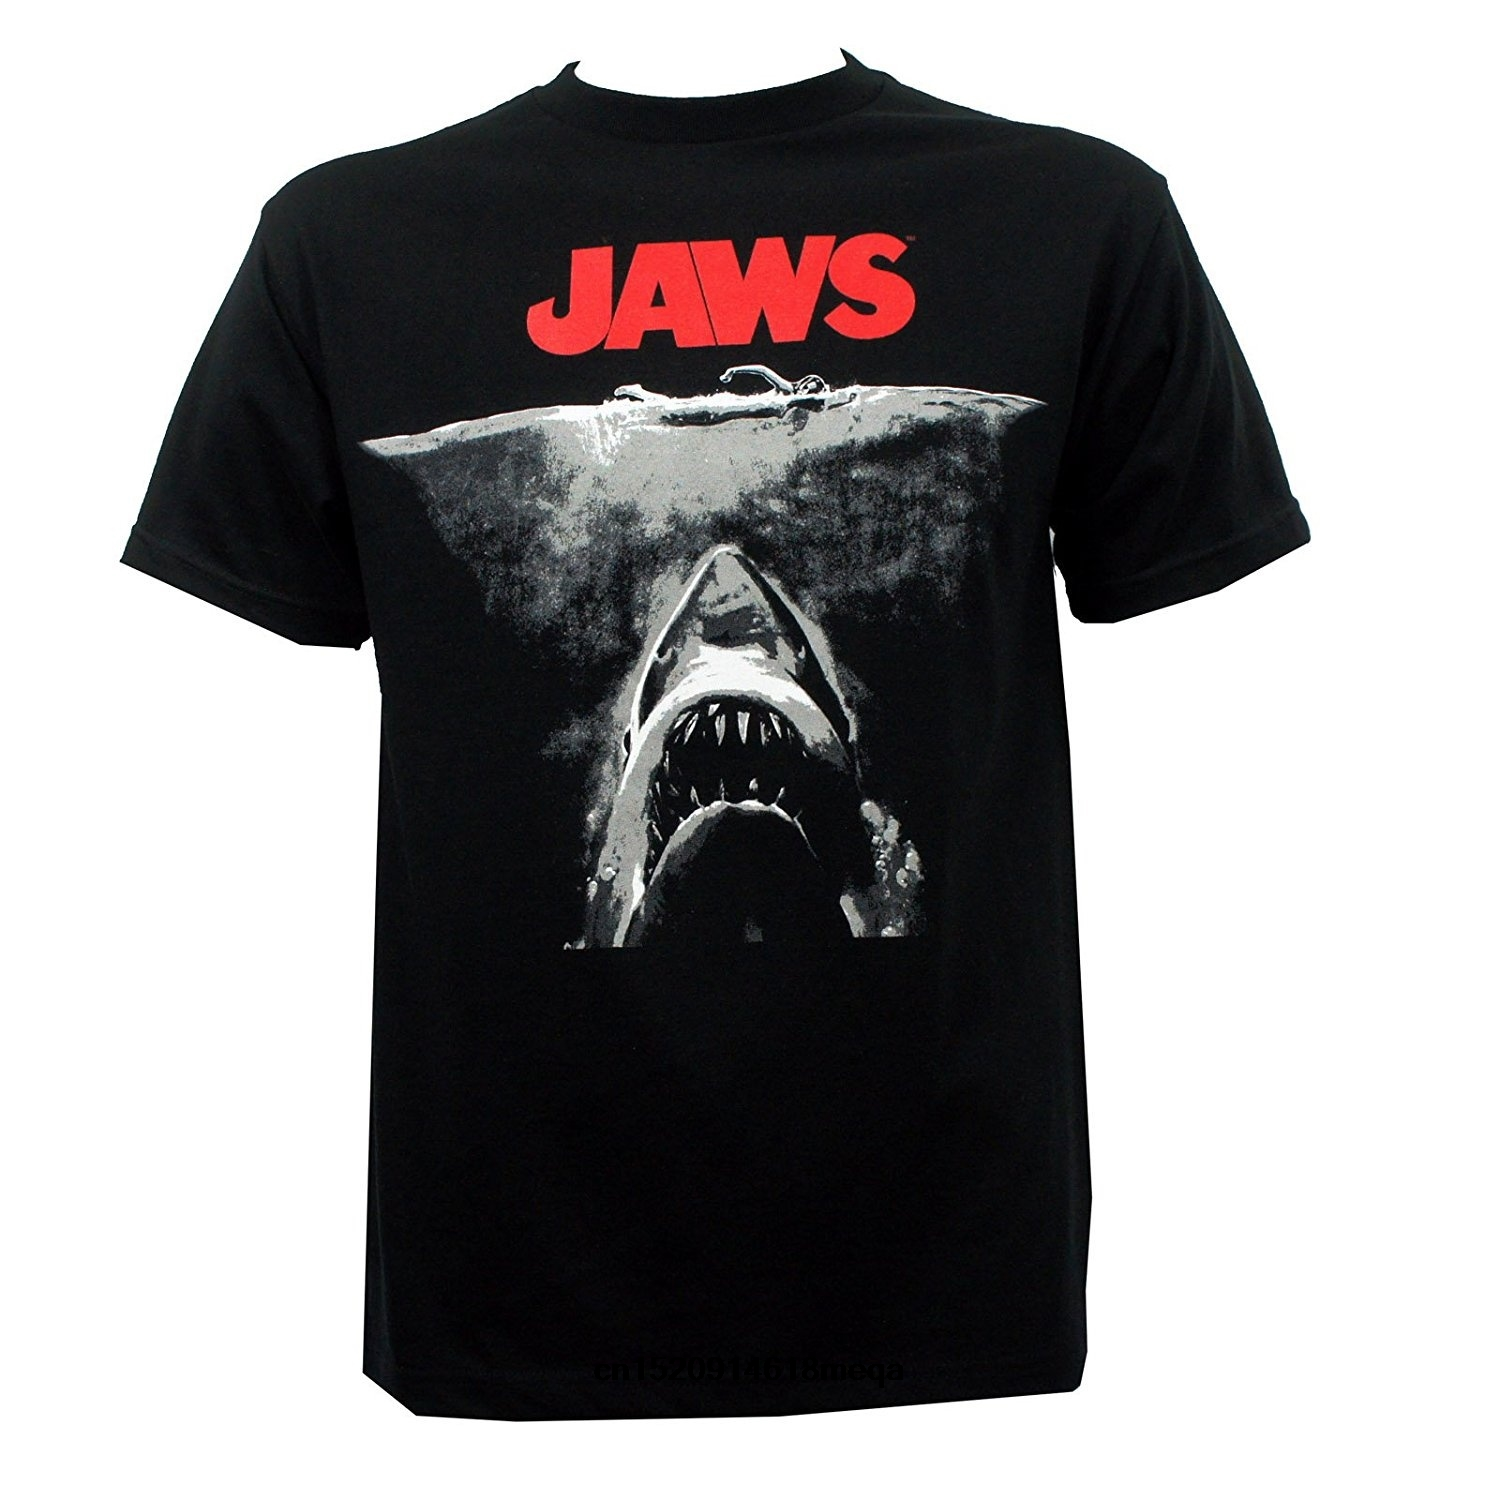 t shirt Jaws Mens Black and White Poster Fashion T-Shirt